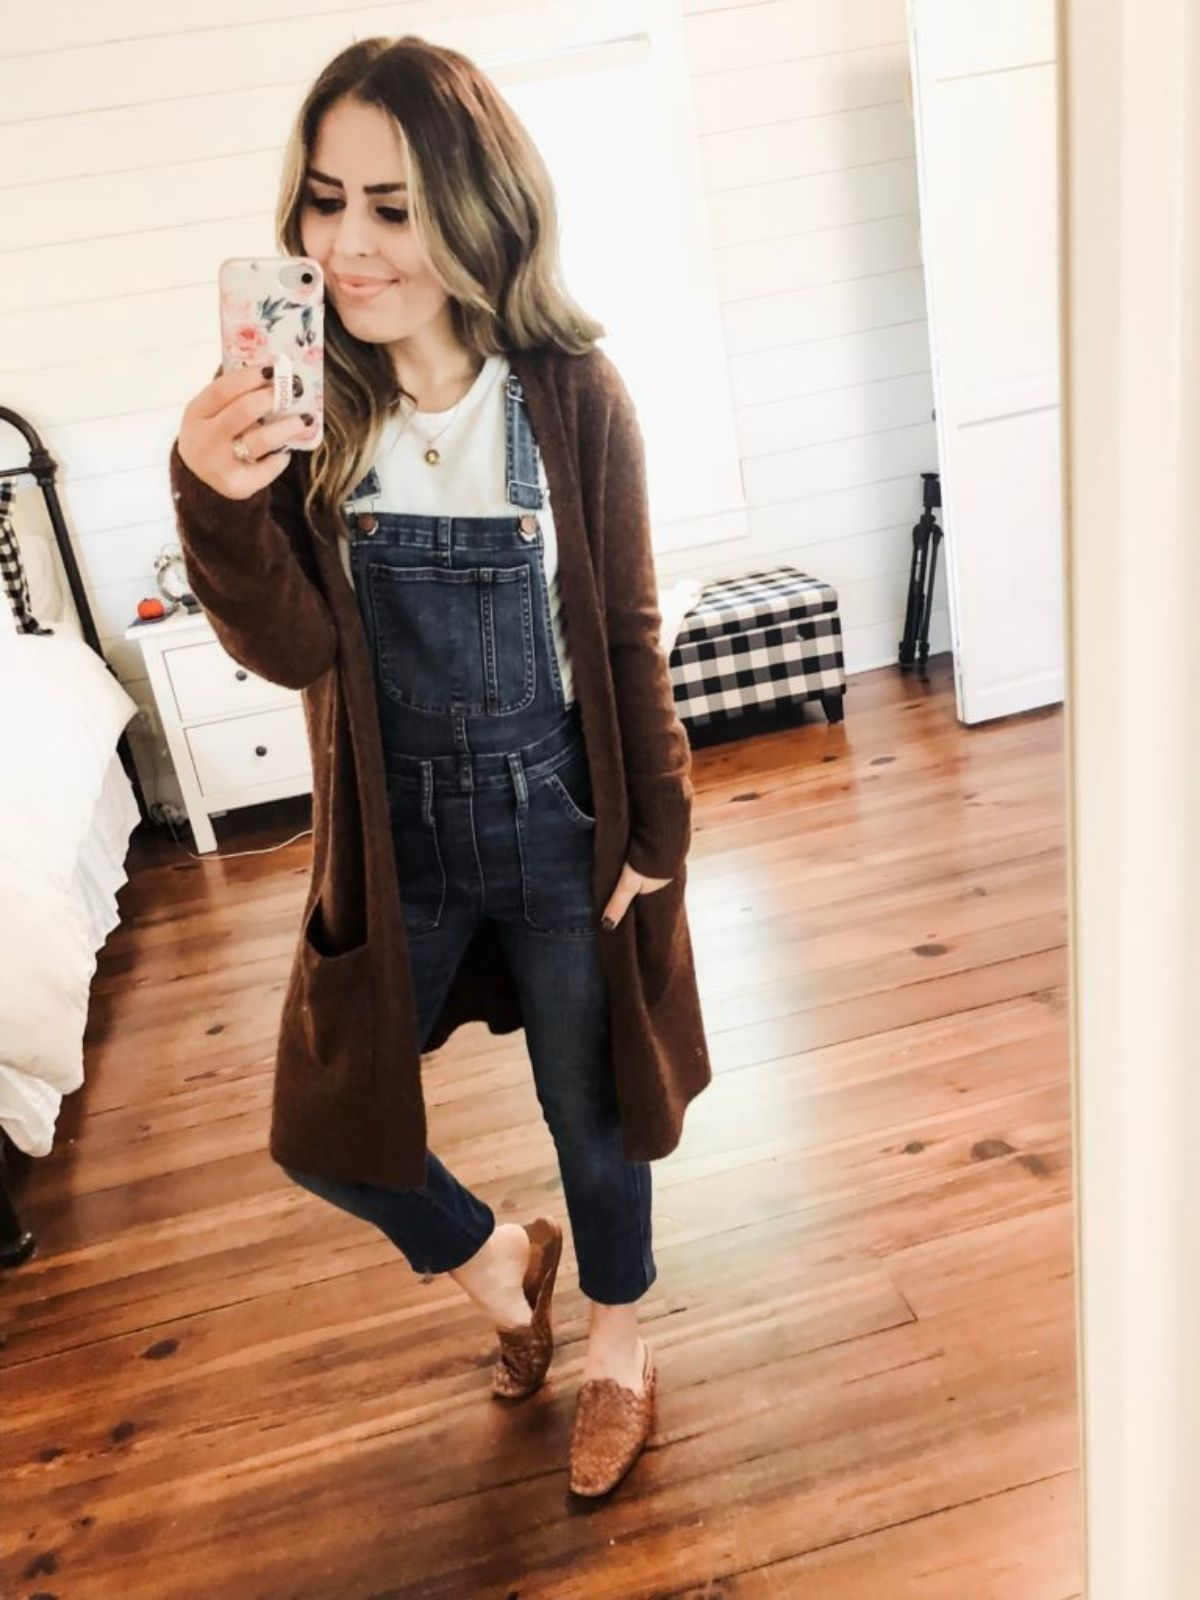 styling cardigan with overalls